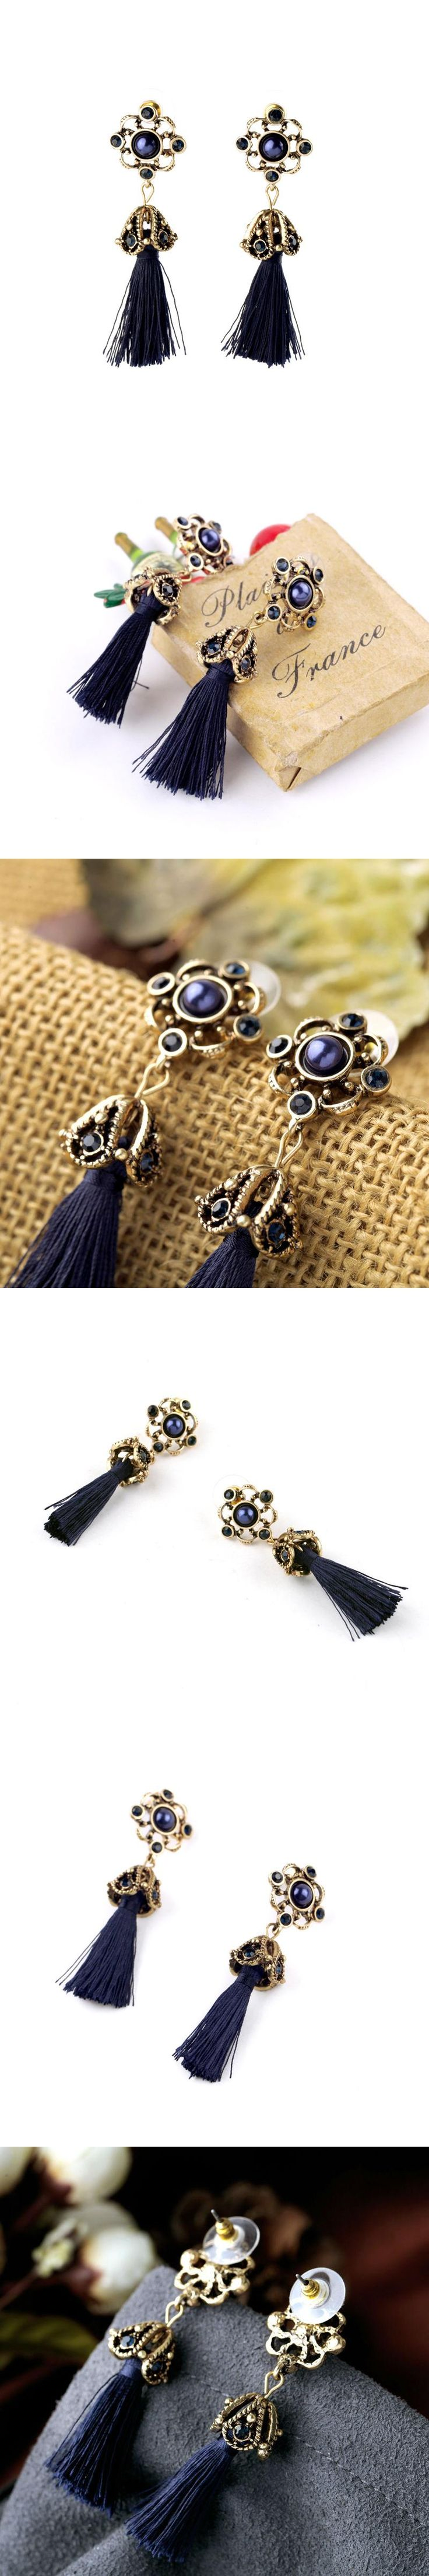 2016 New Fashion Ethnic Style Chunky Tassel Earring For Costume Party Pierced Cheap Earring Wholesale Feminine Drop Earring